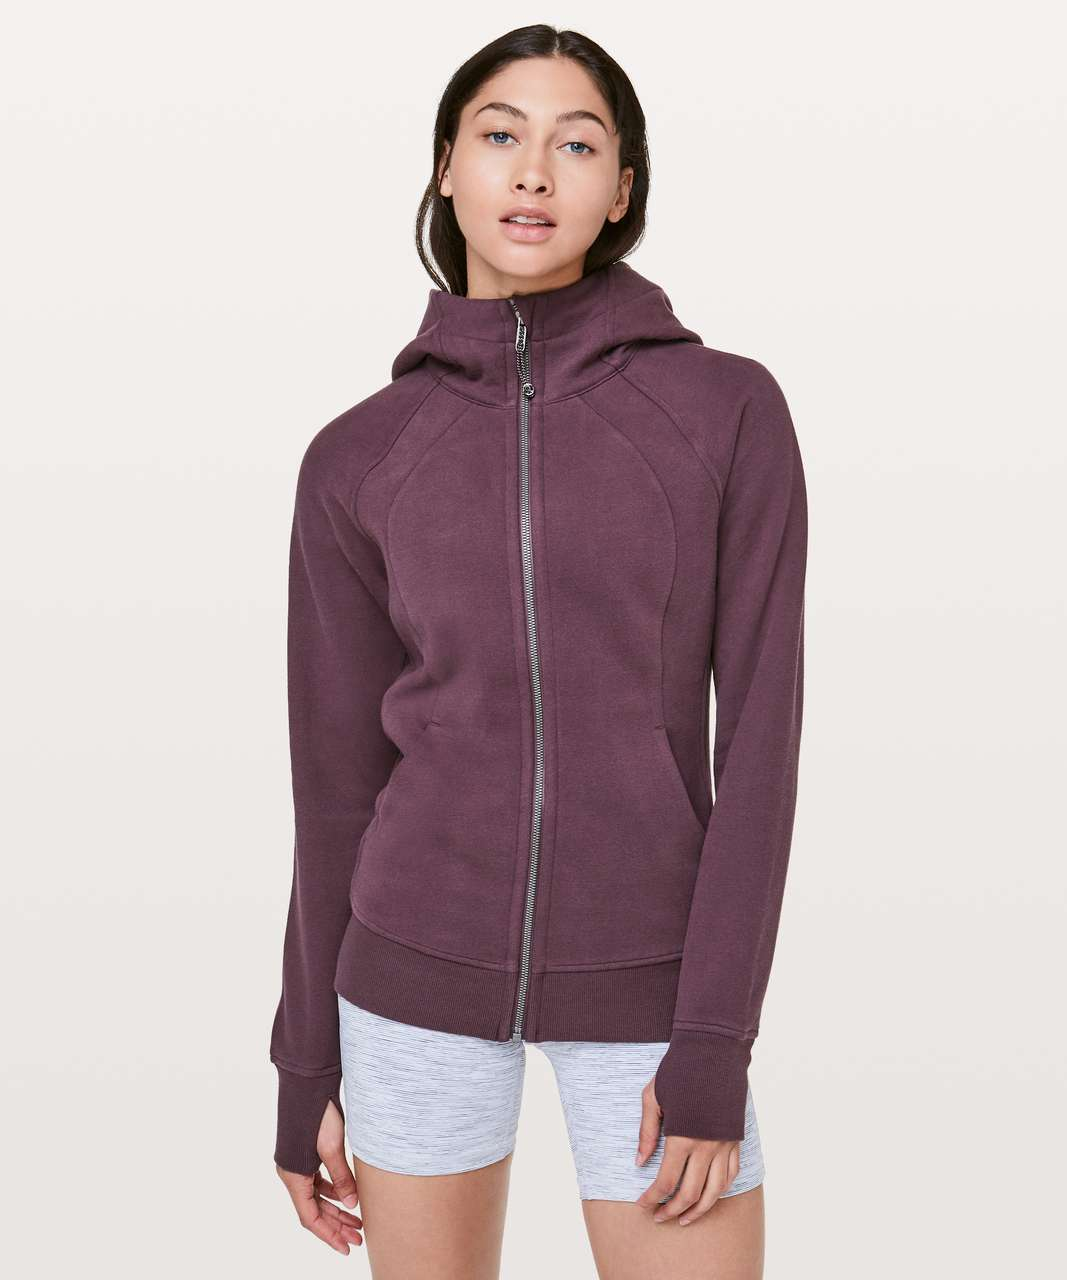 Lululemon Scuba Hoodie *Light Cotton Fleece - Arctic Plum